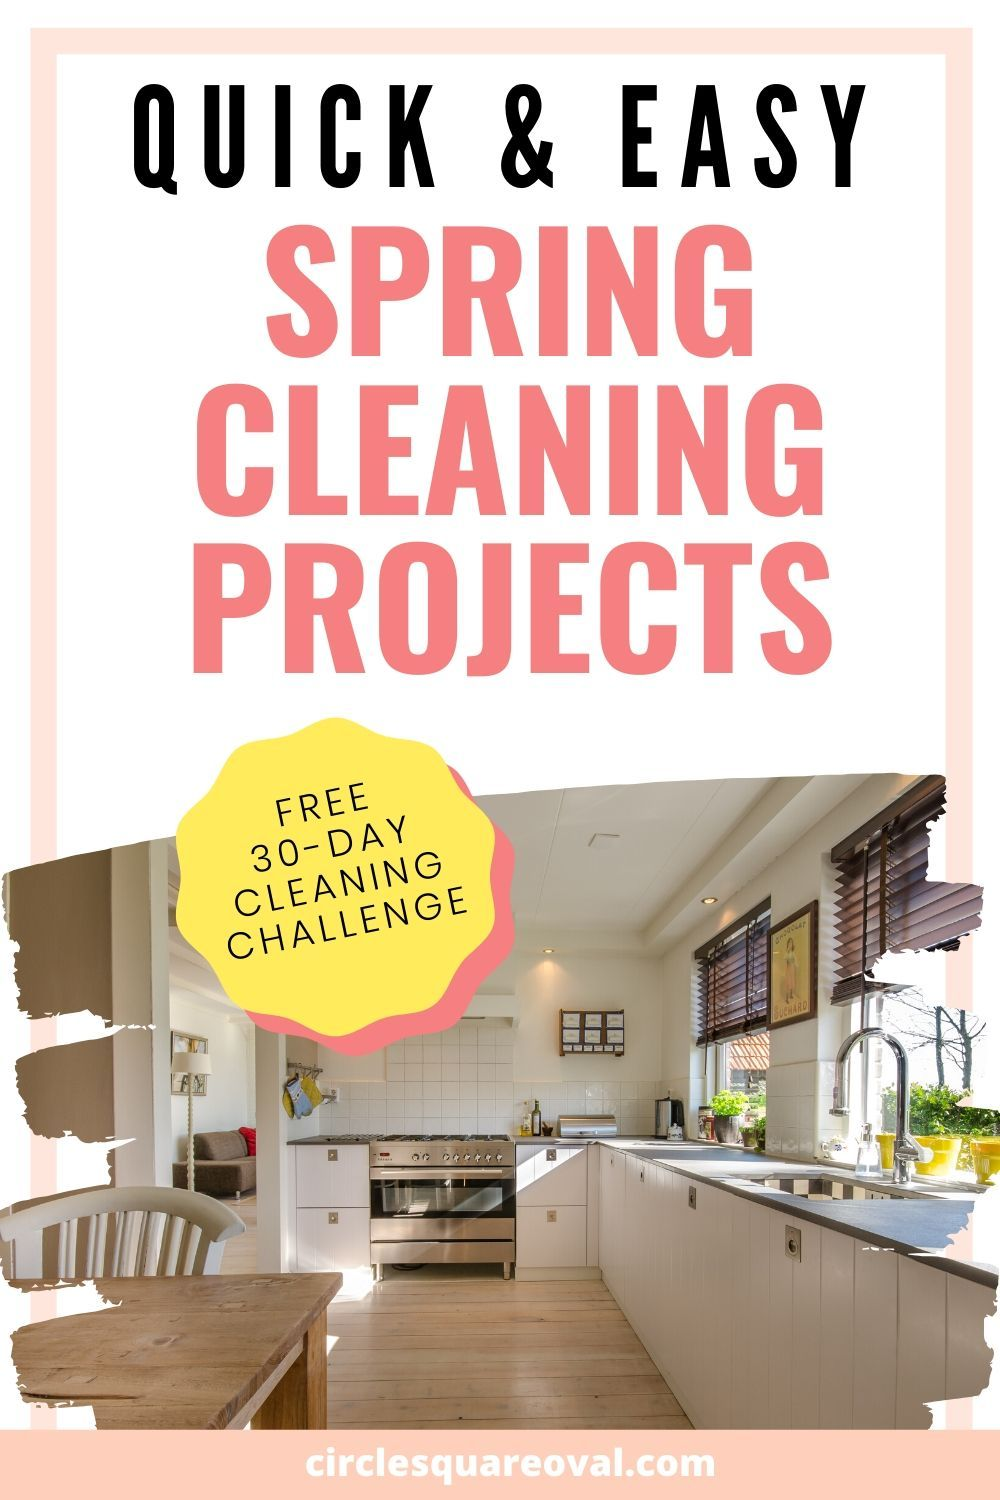 10 minutes a day is all it takes to conquer these cleaning tasks!  Get a FREE 30-day cleaning challenge, and have your house looking fantastic in no time!  #SpringCleaning #Cleaning #CleaningChallenge